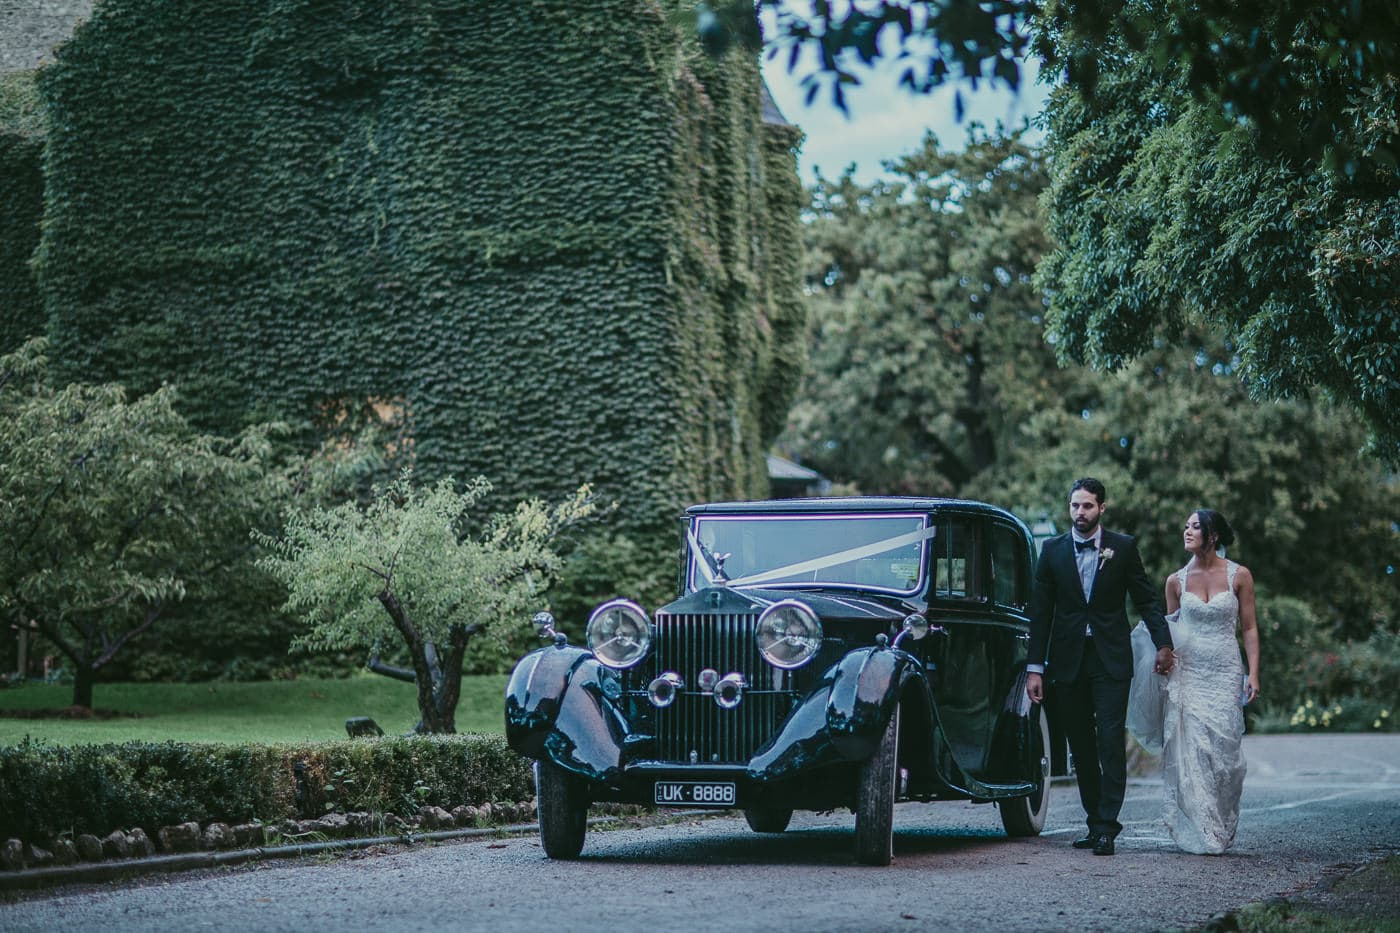 luxury weddings in melbourne - high end cars and photography